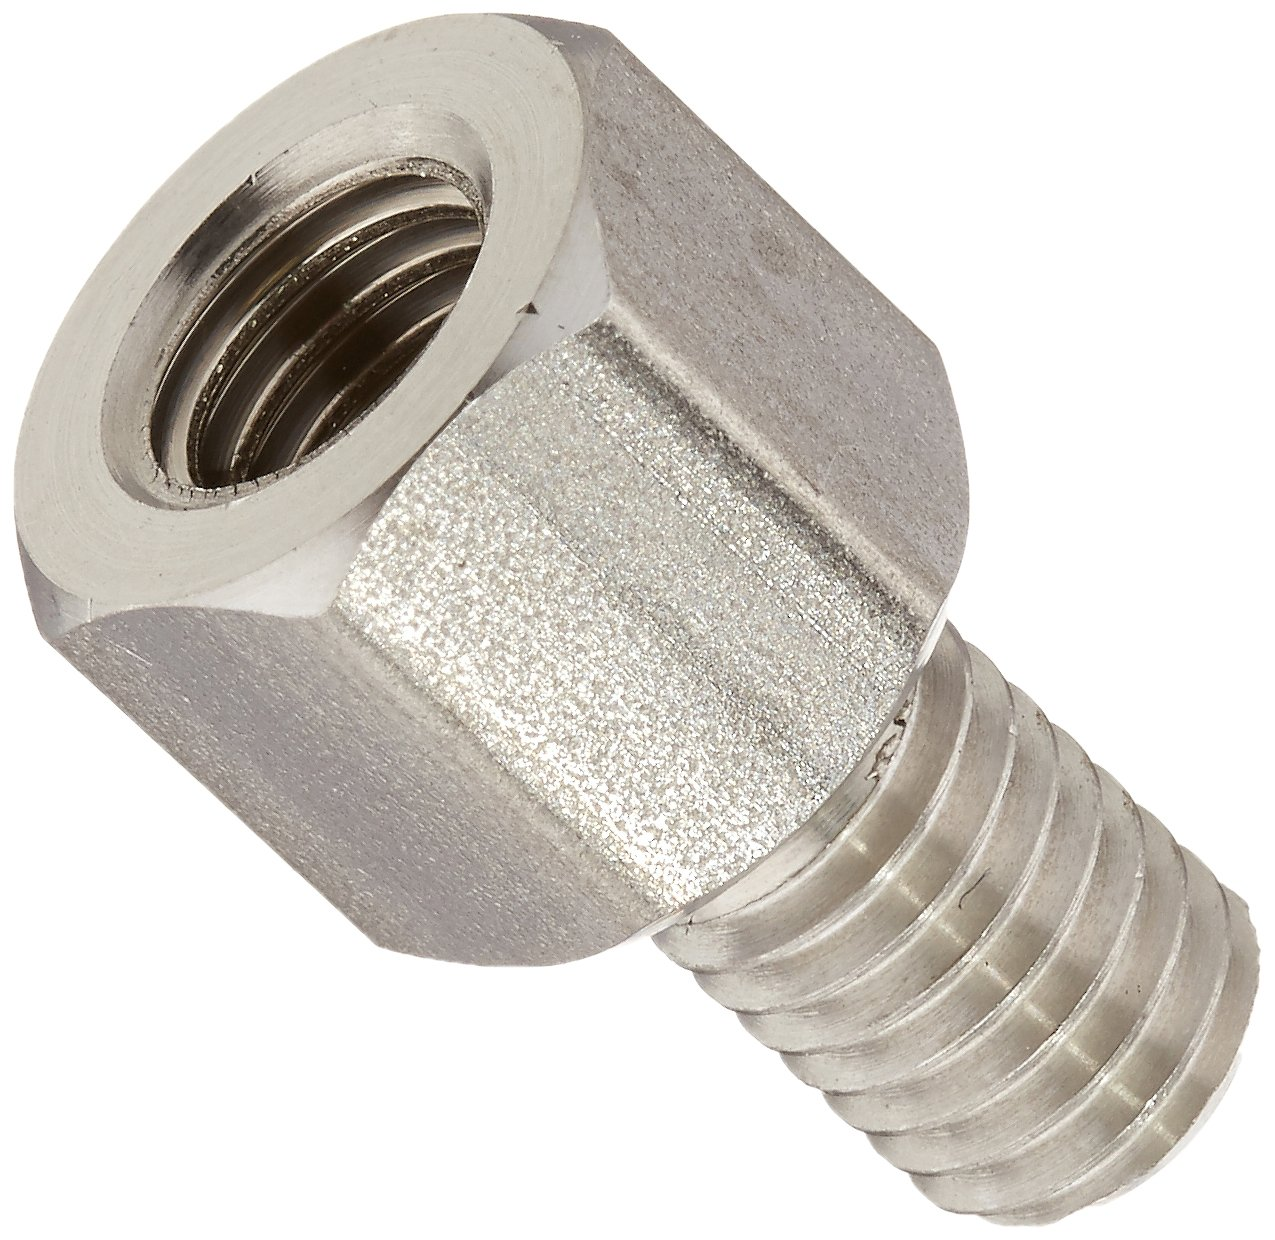 0.875 Length, Female Lyn-Tron Steel 6-32 Screw Size Zinc Plated 0.25 OD Pack of 10